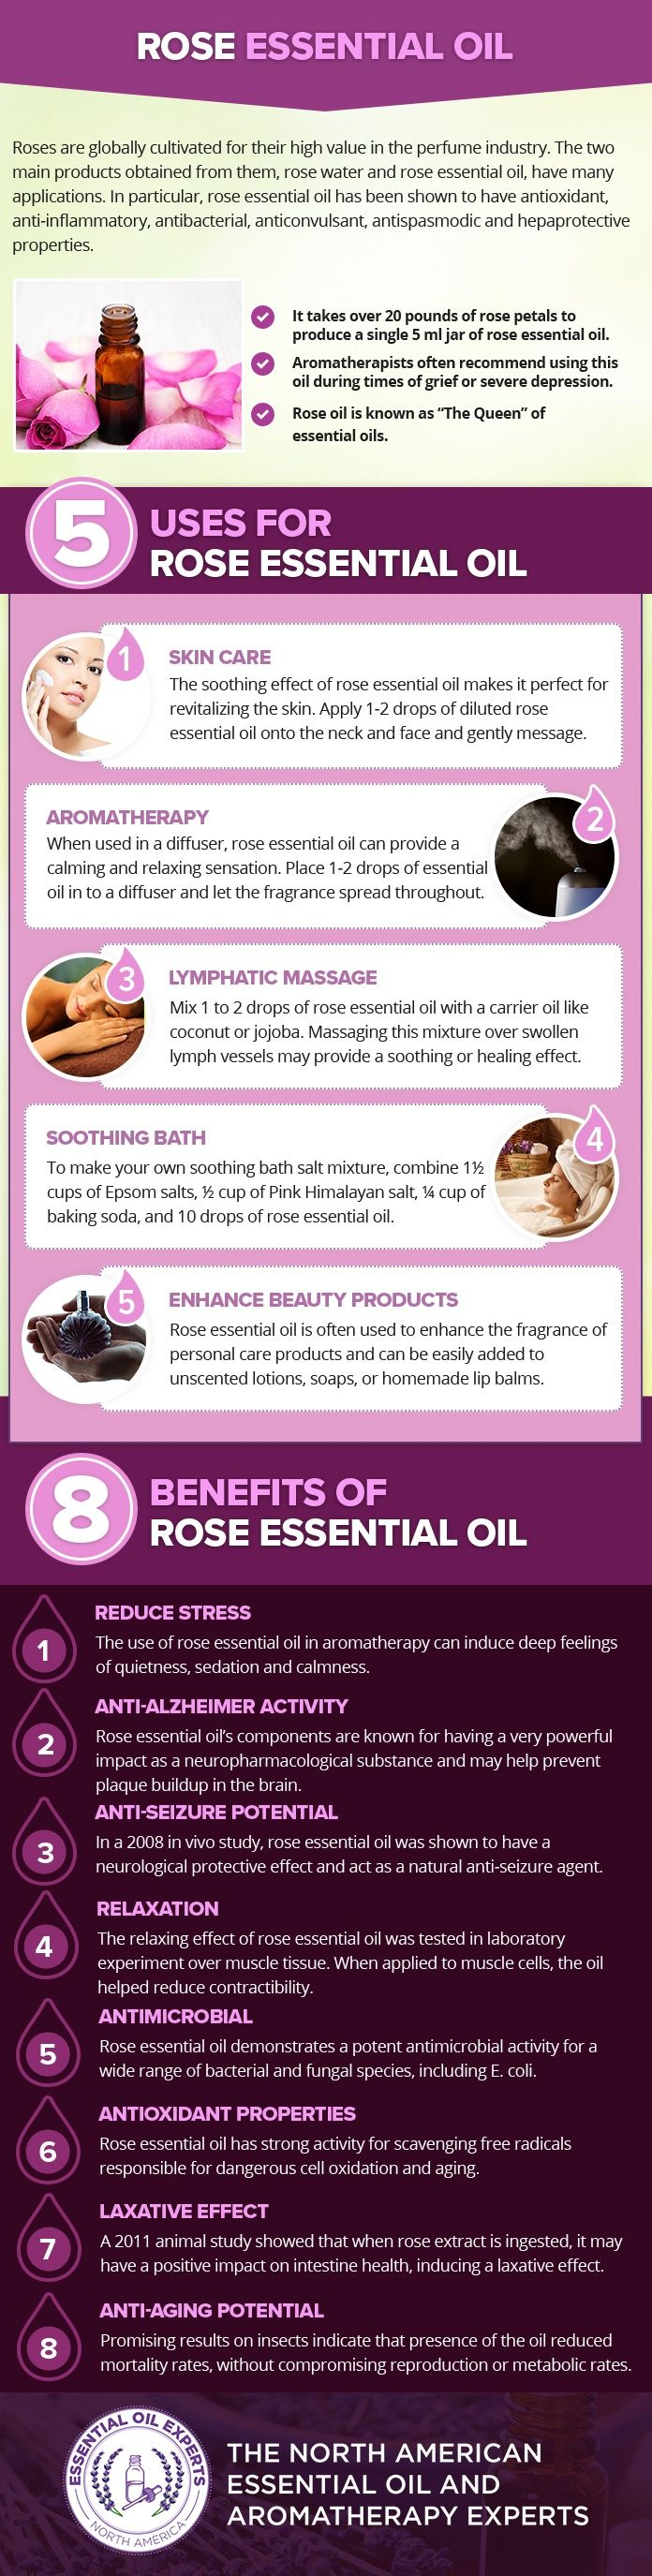 rose essential oil benefits and uses, and where to buy rose essential oil